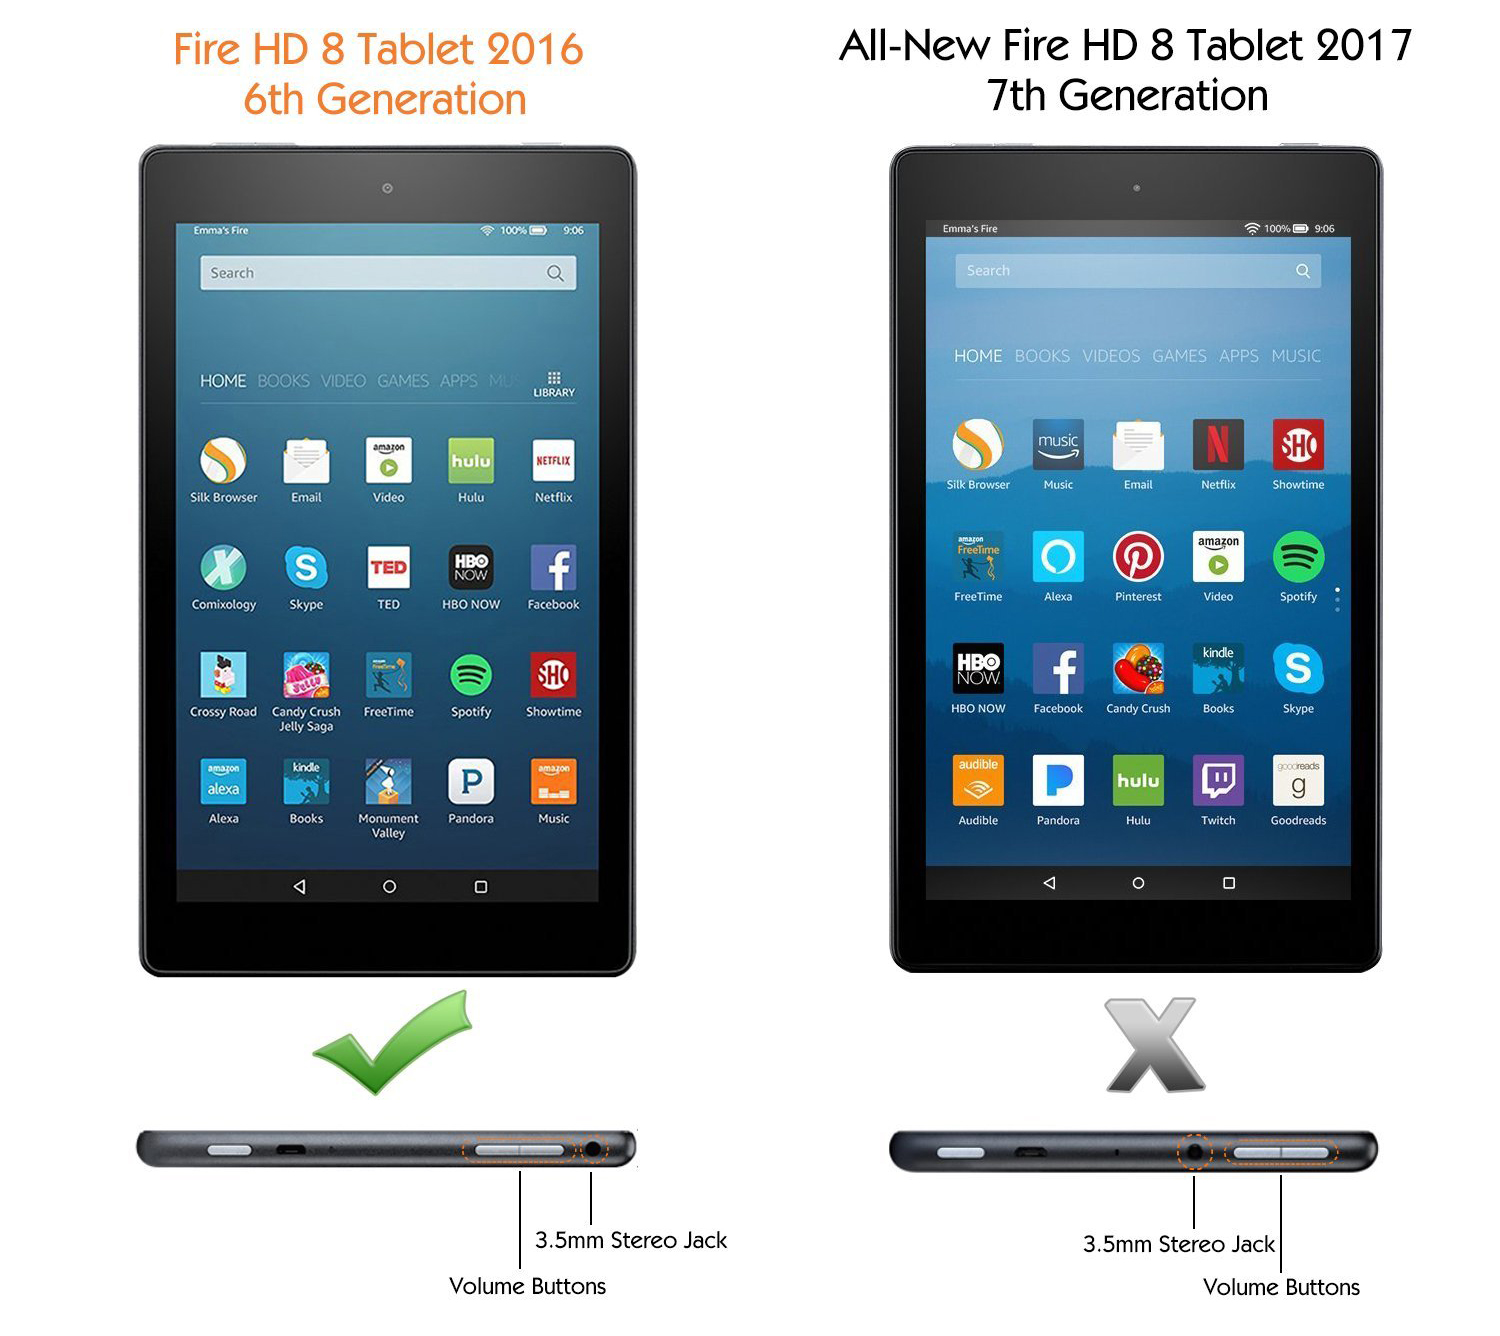 difference between fire hd 8 2016 and 2017